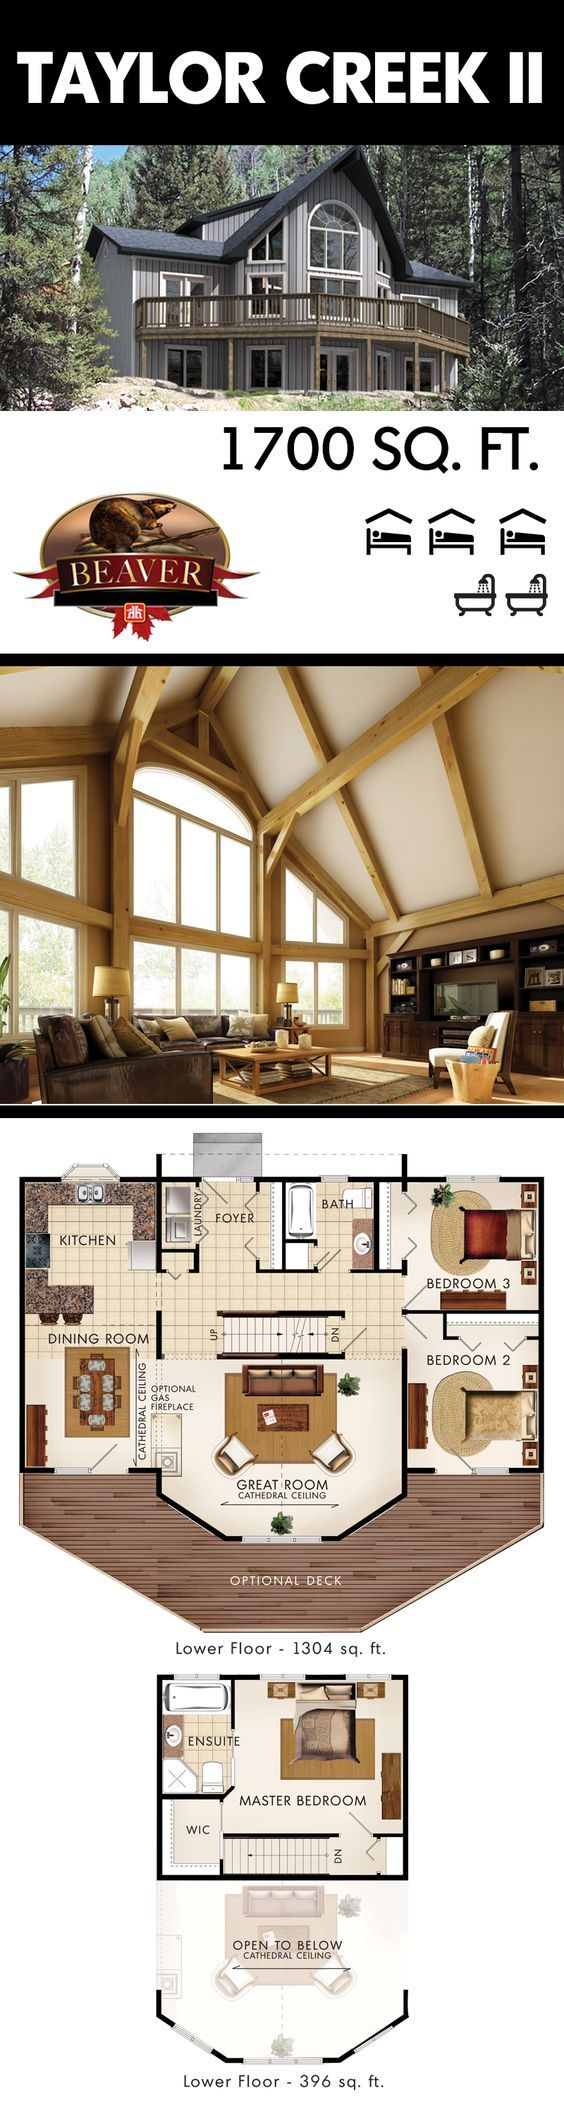 Most house plans are only symmetrical from the exterior. The Taylor Creek II brings the symmetry inside throughout the entire main floor. #BeaverHomesAndCottages: